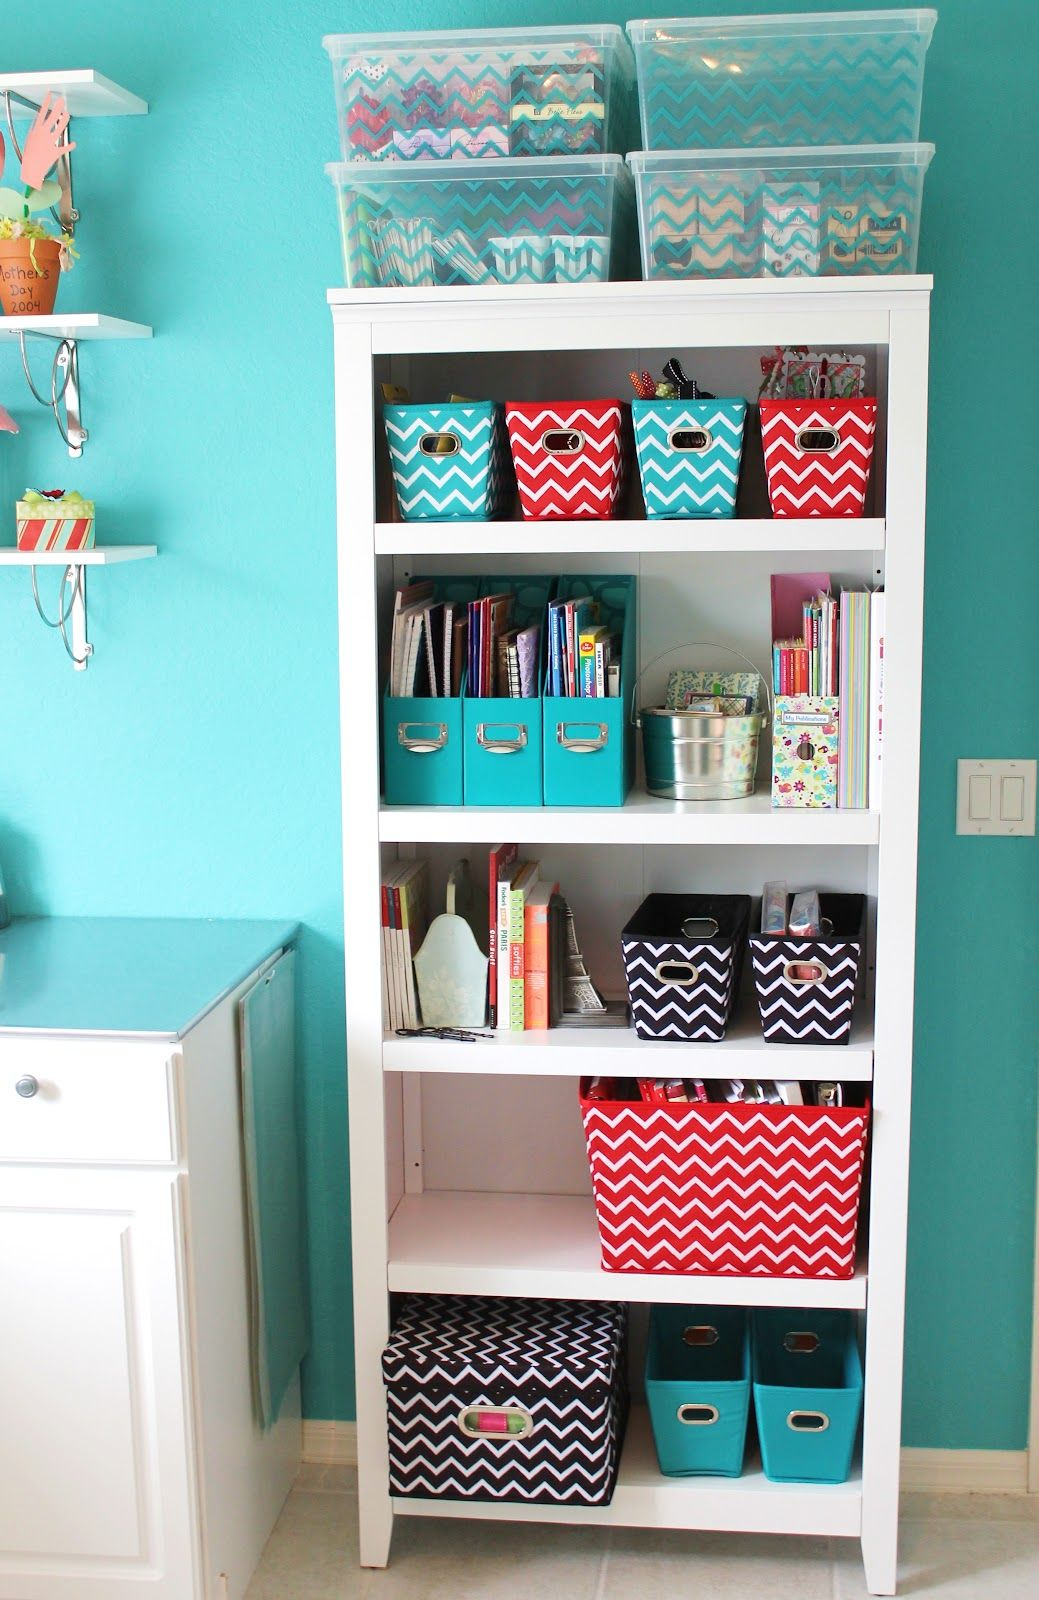 Bookcase and chevron storage from target